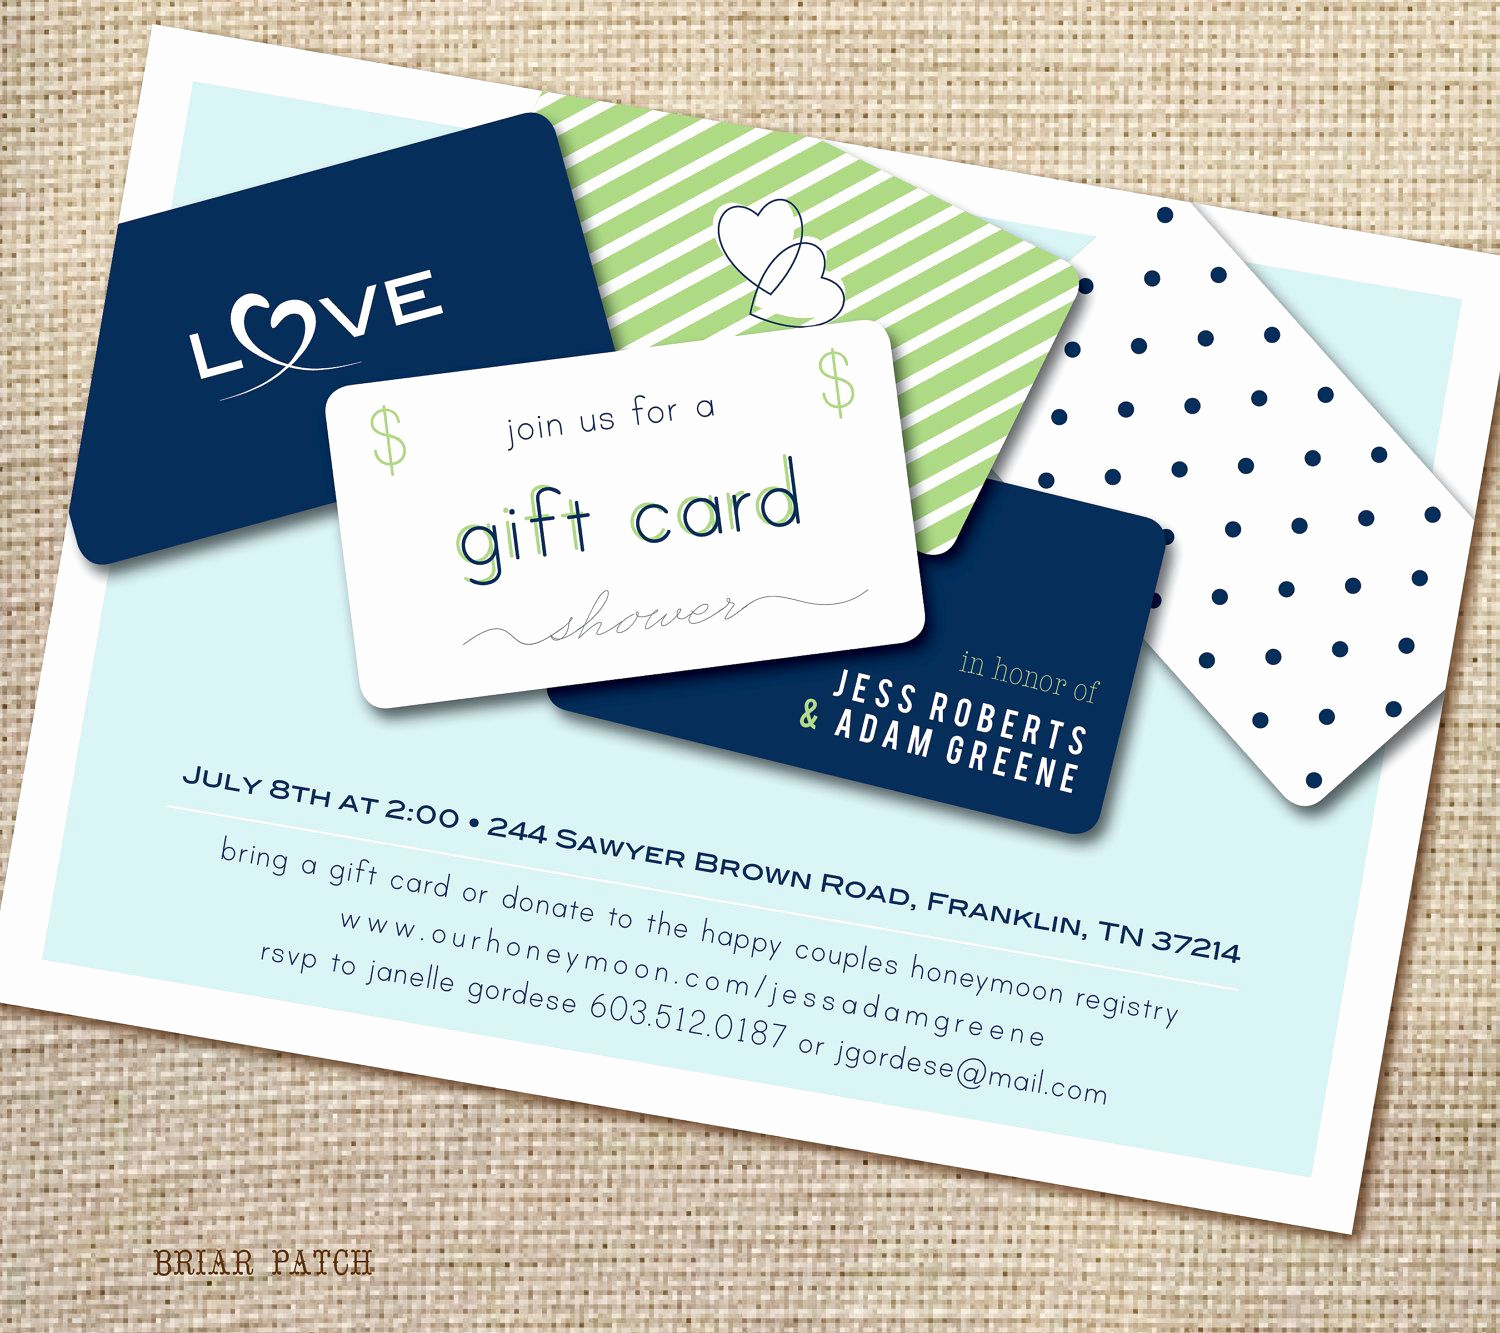 Card Shower Invitation Wording Inspirational T Card Bridal Shower Invitation Wording